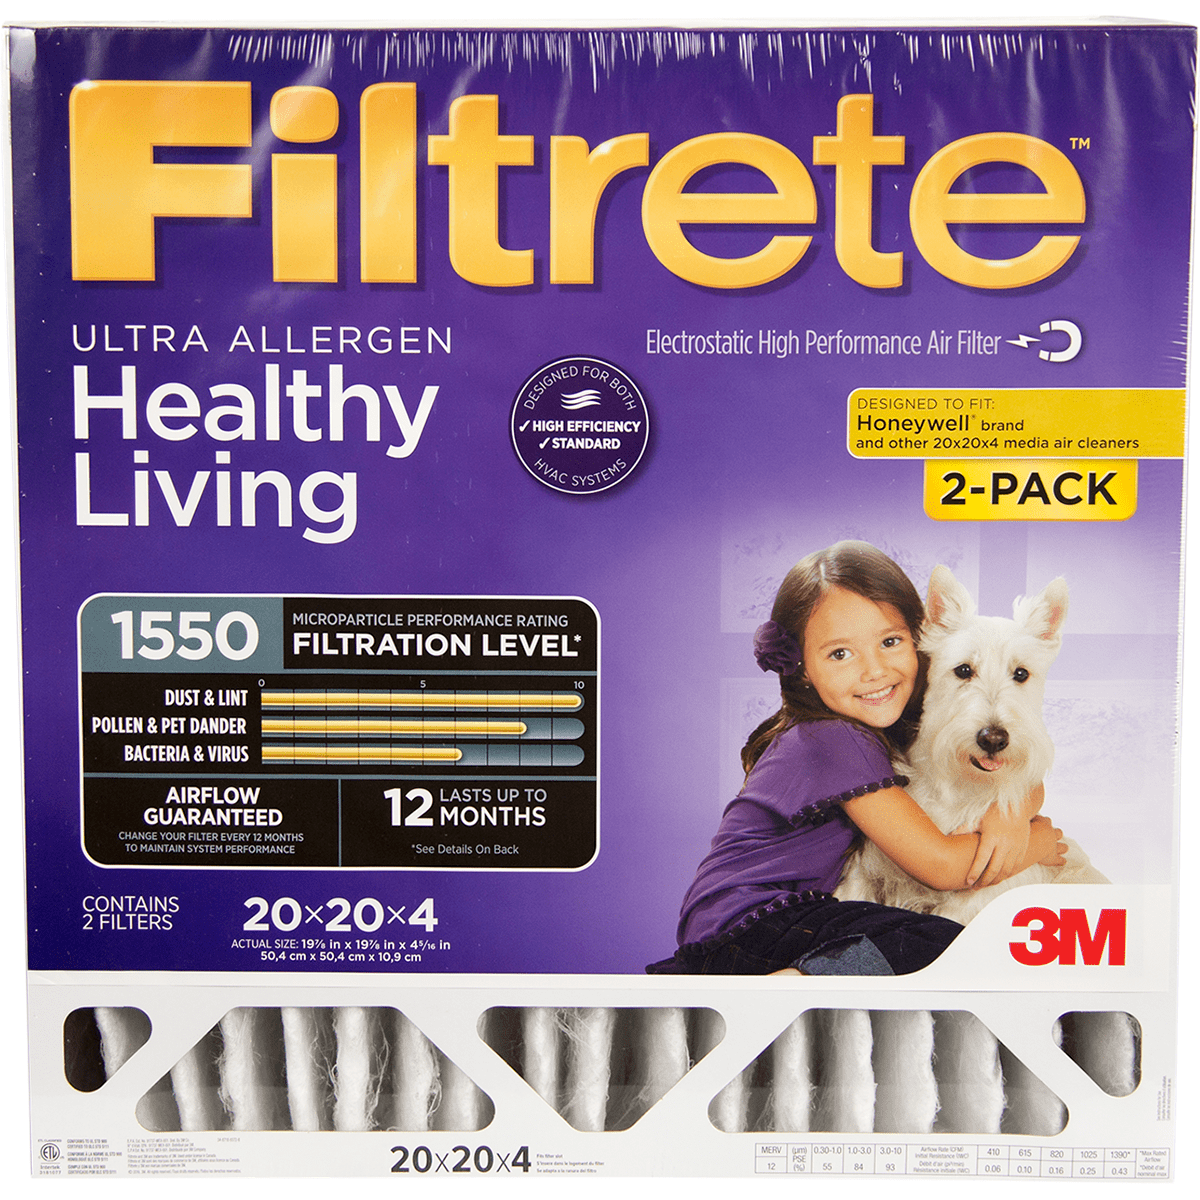 3m Filtrete Healthy Living 1550 Mpr Ultra Allergen Reduction Filters 20x20x4 2-pk